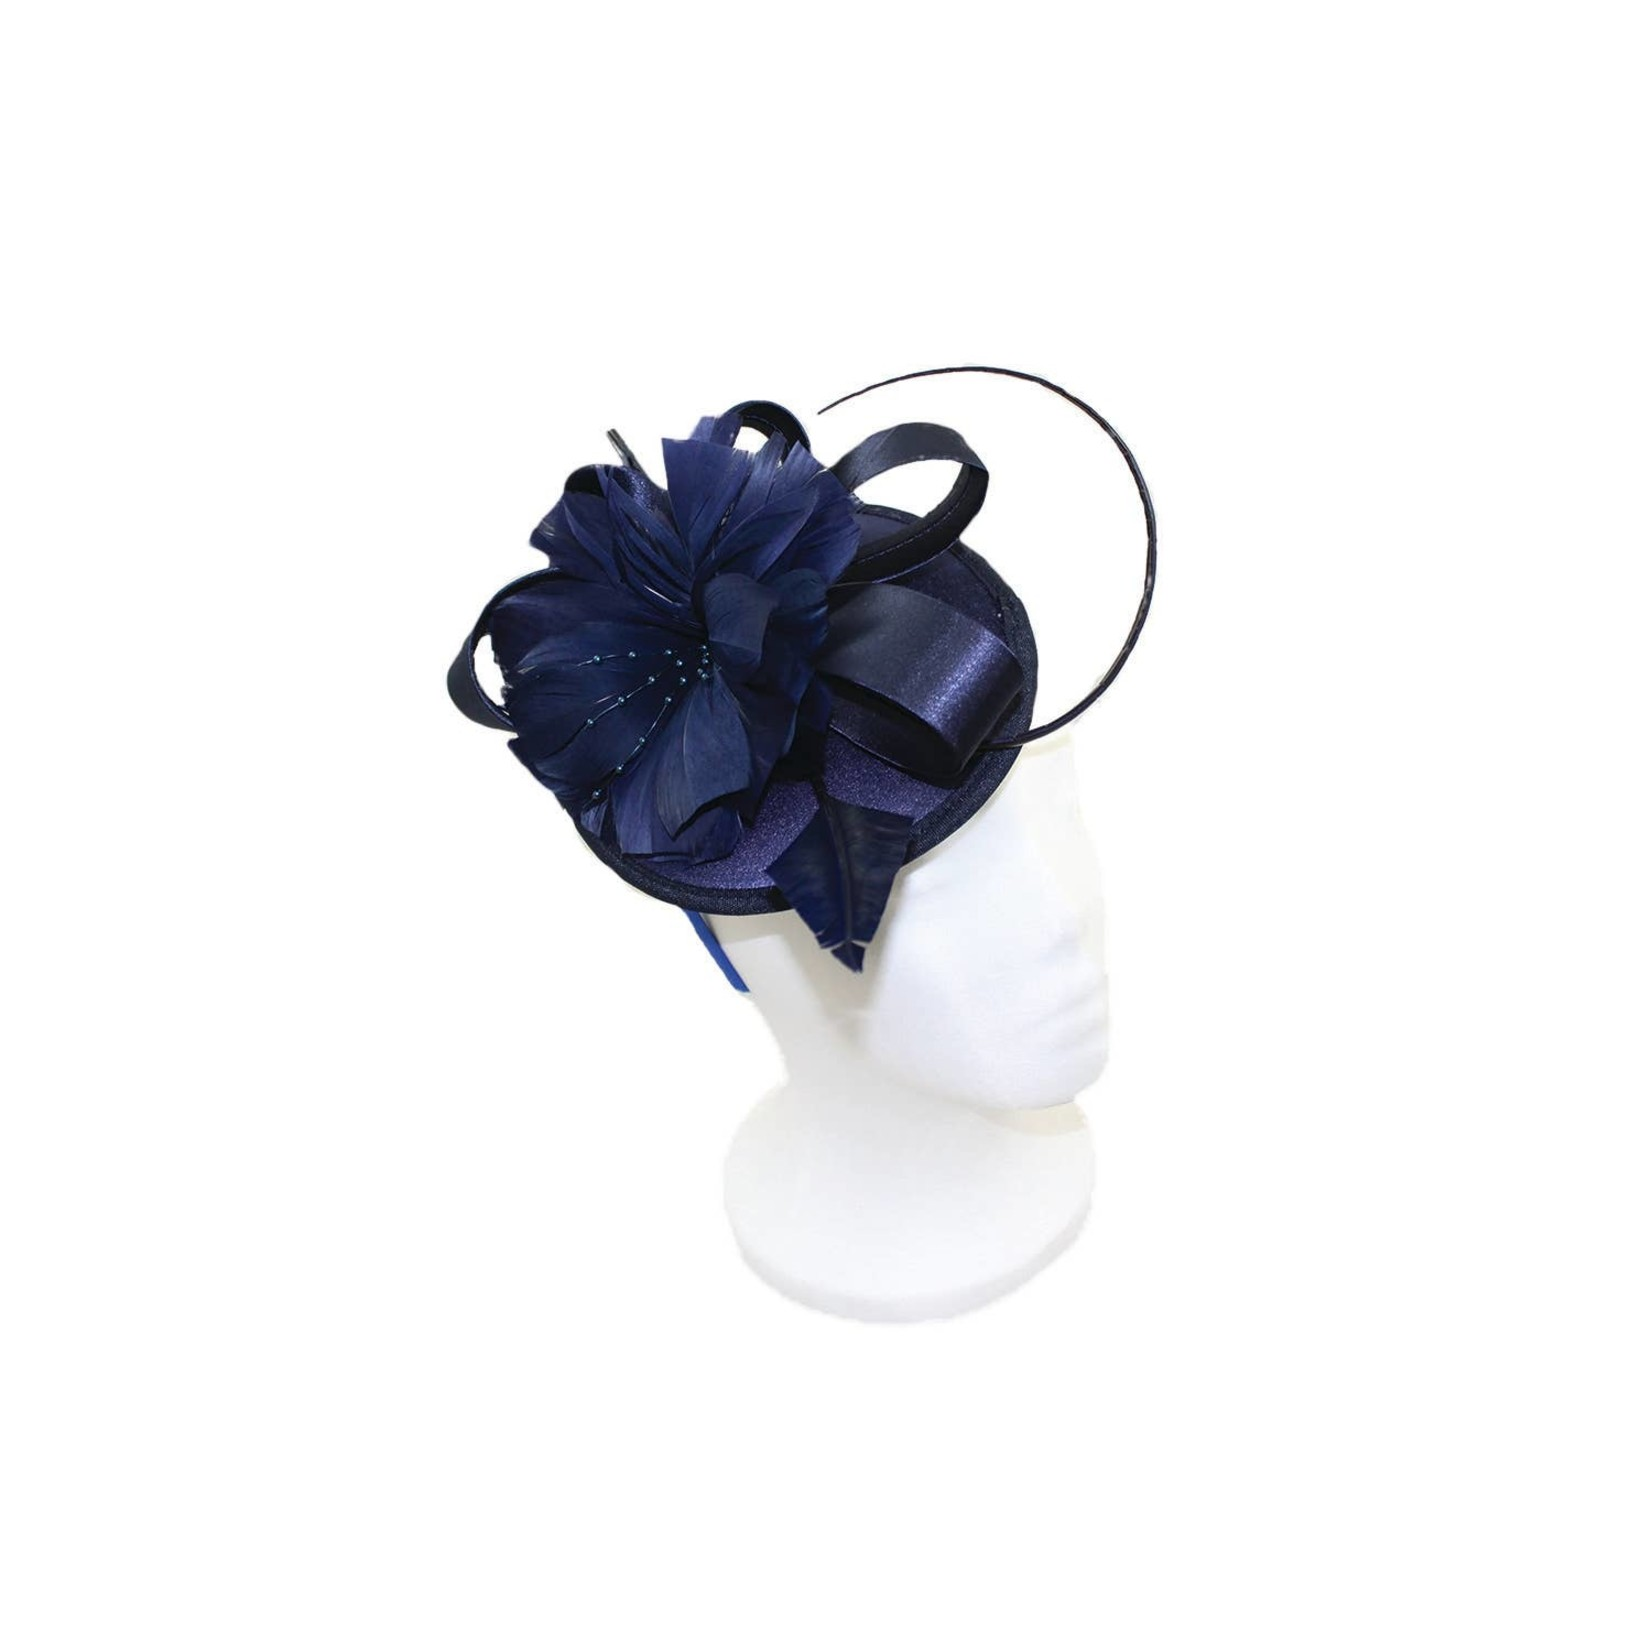 Jeanne Simmons Fascinator Headband of Poly Satin Oval Bow in Navy